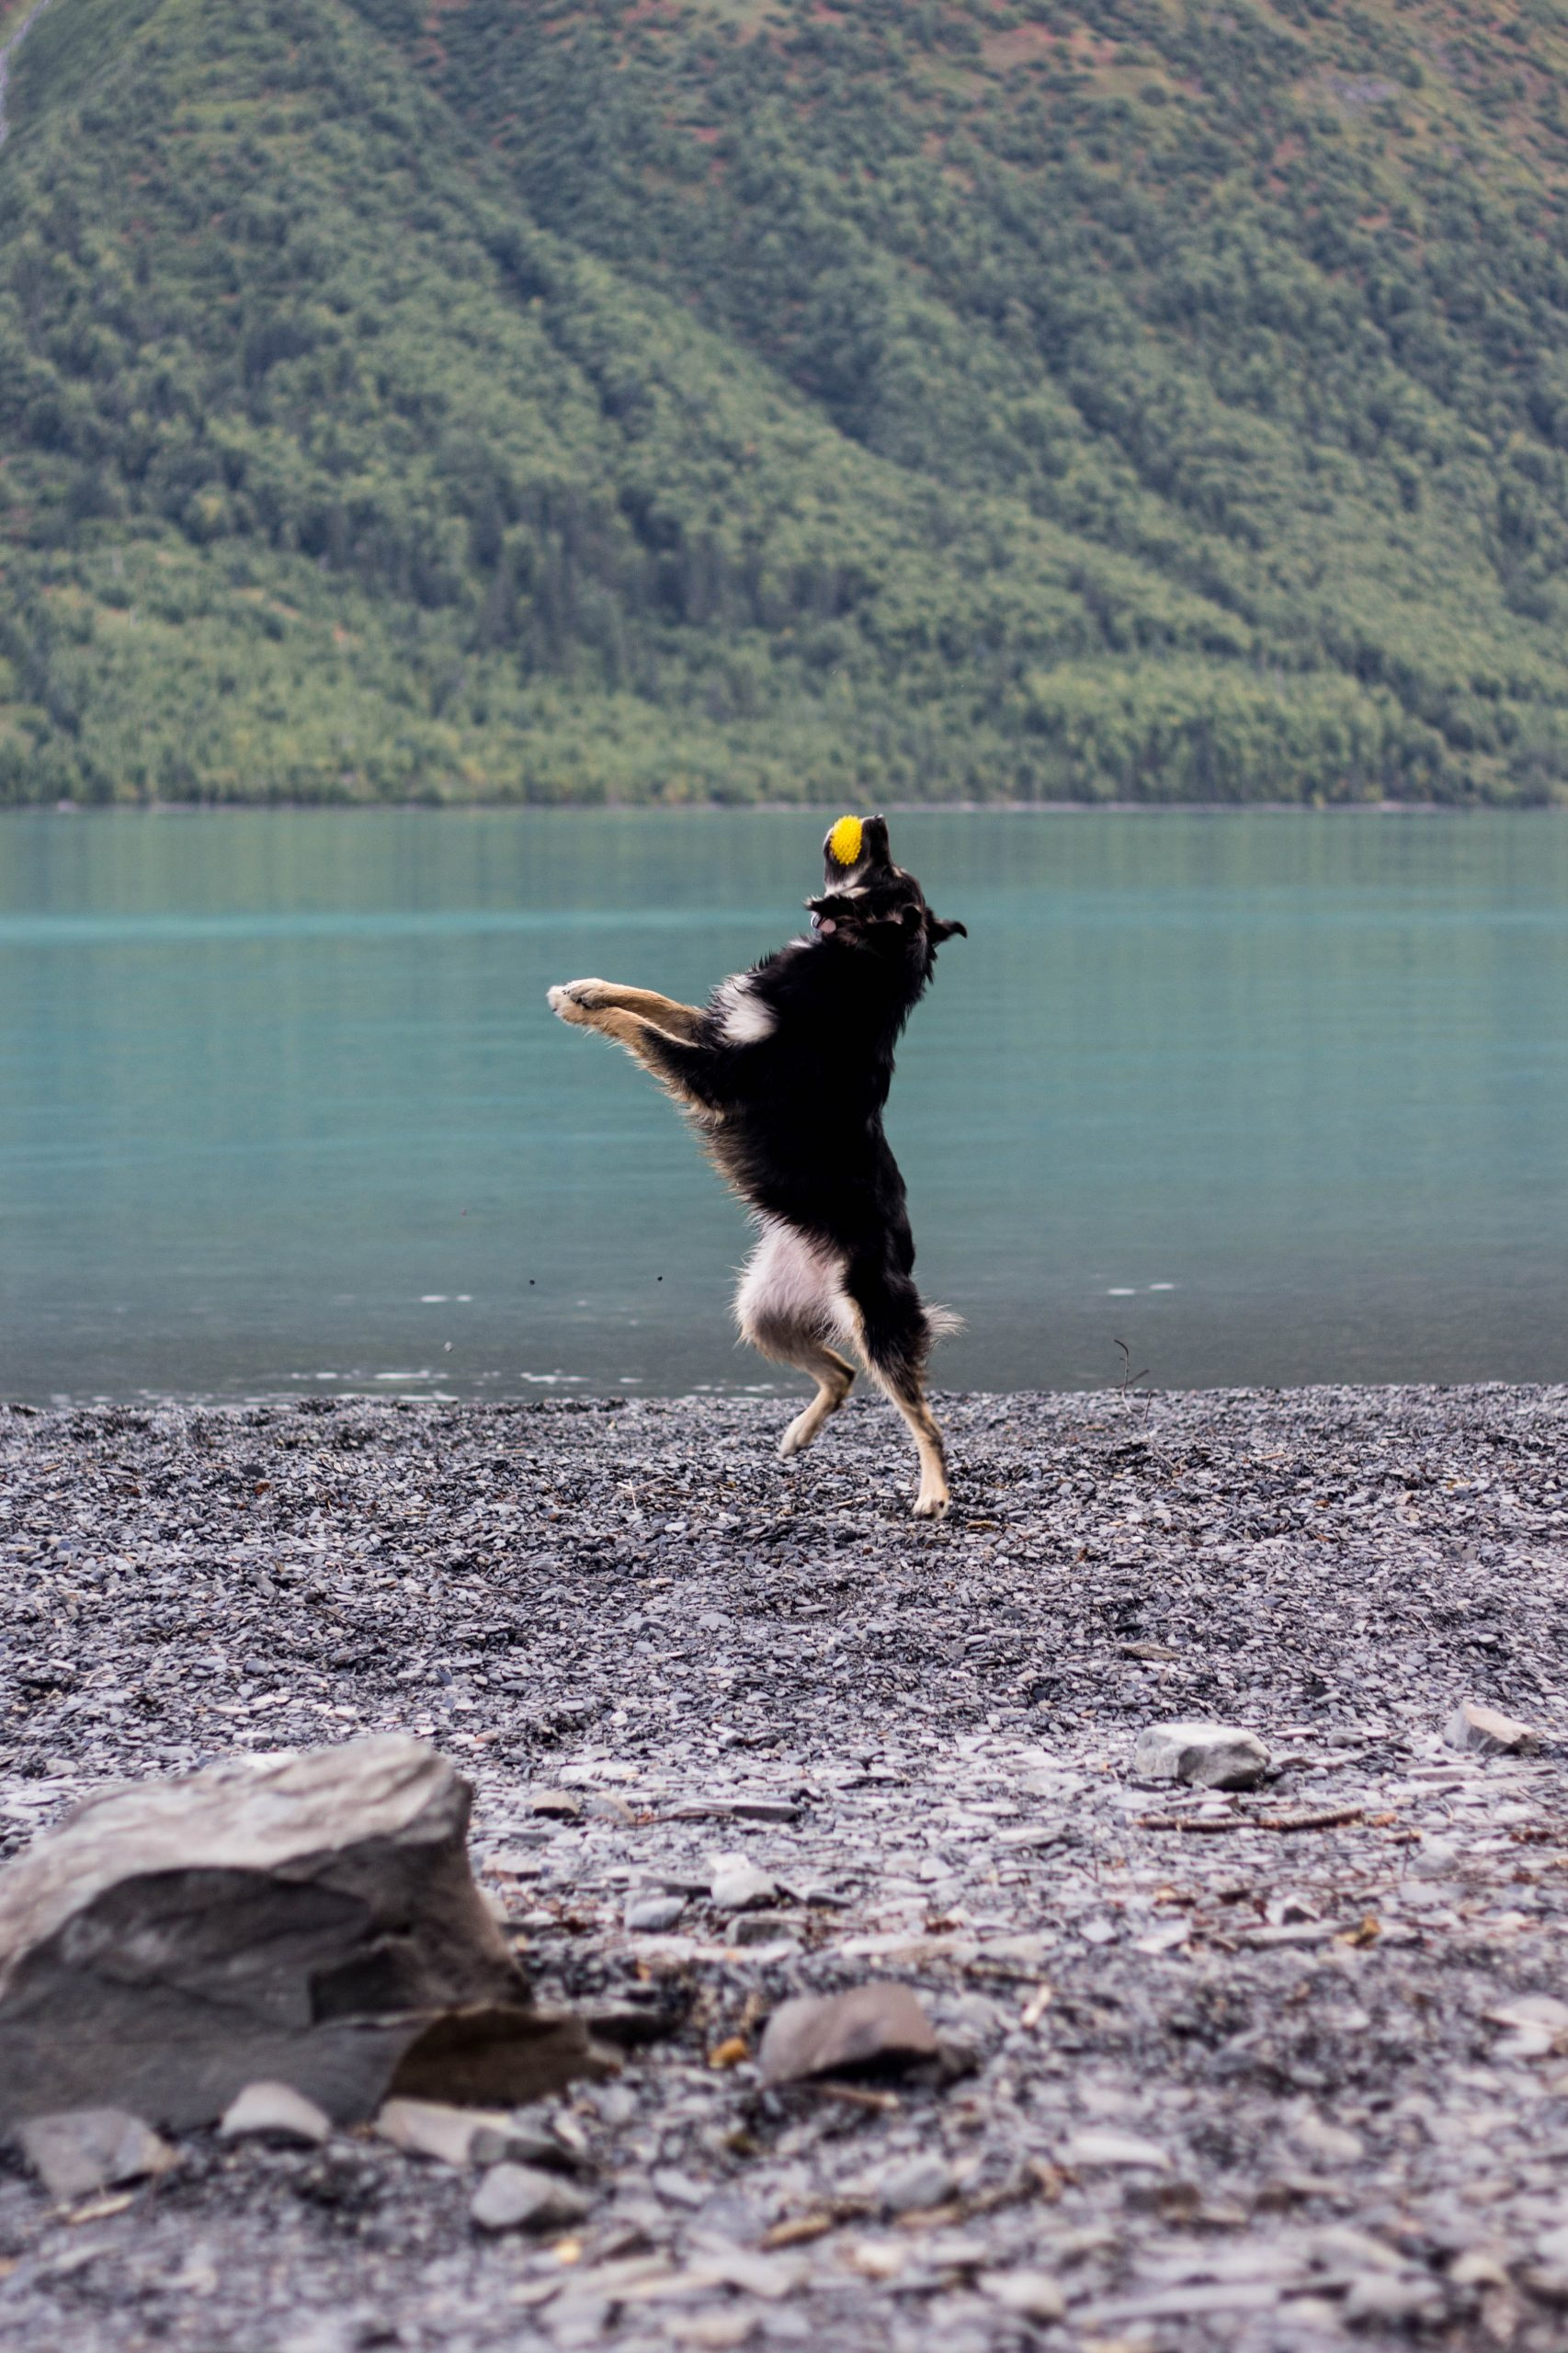 Australian Shepherd leaping up